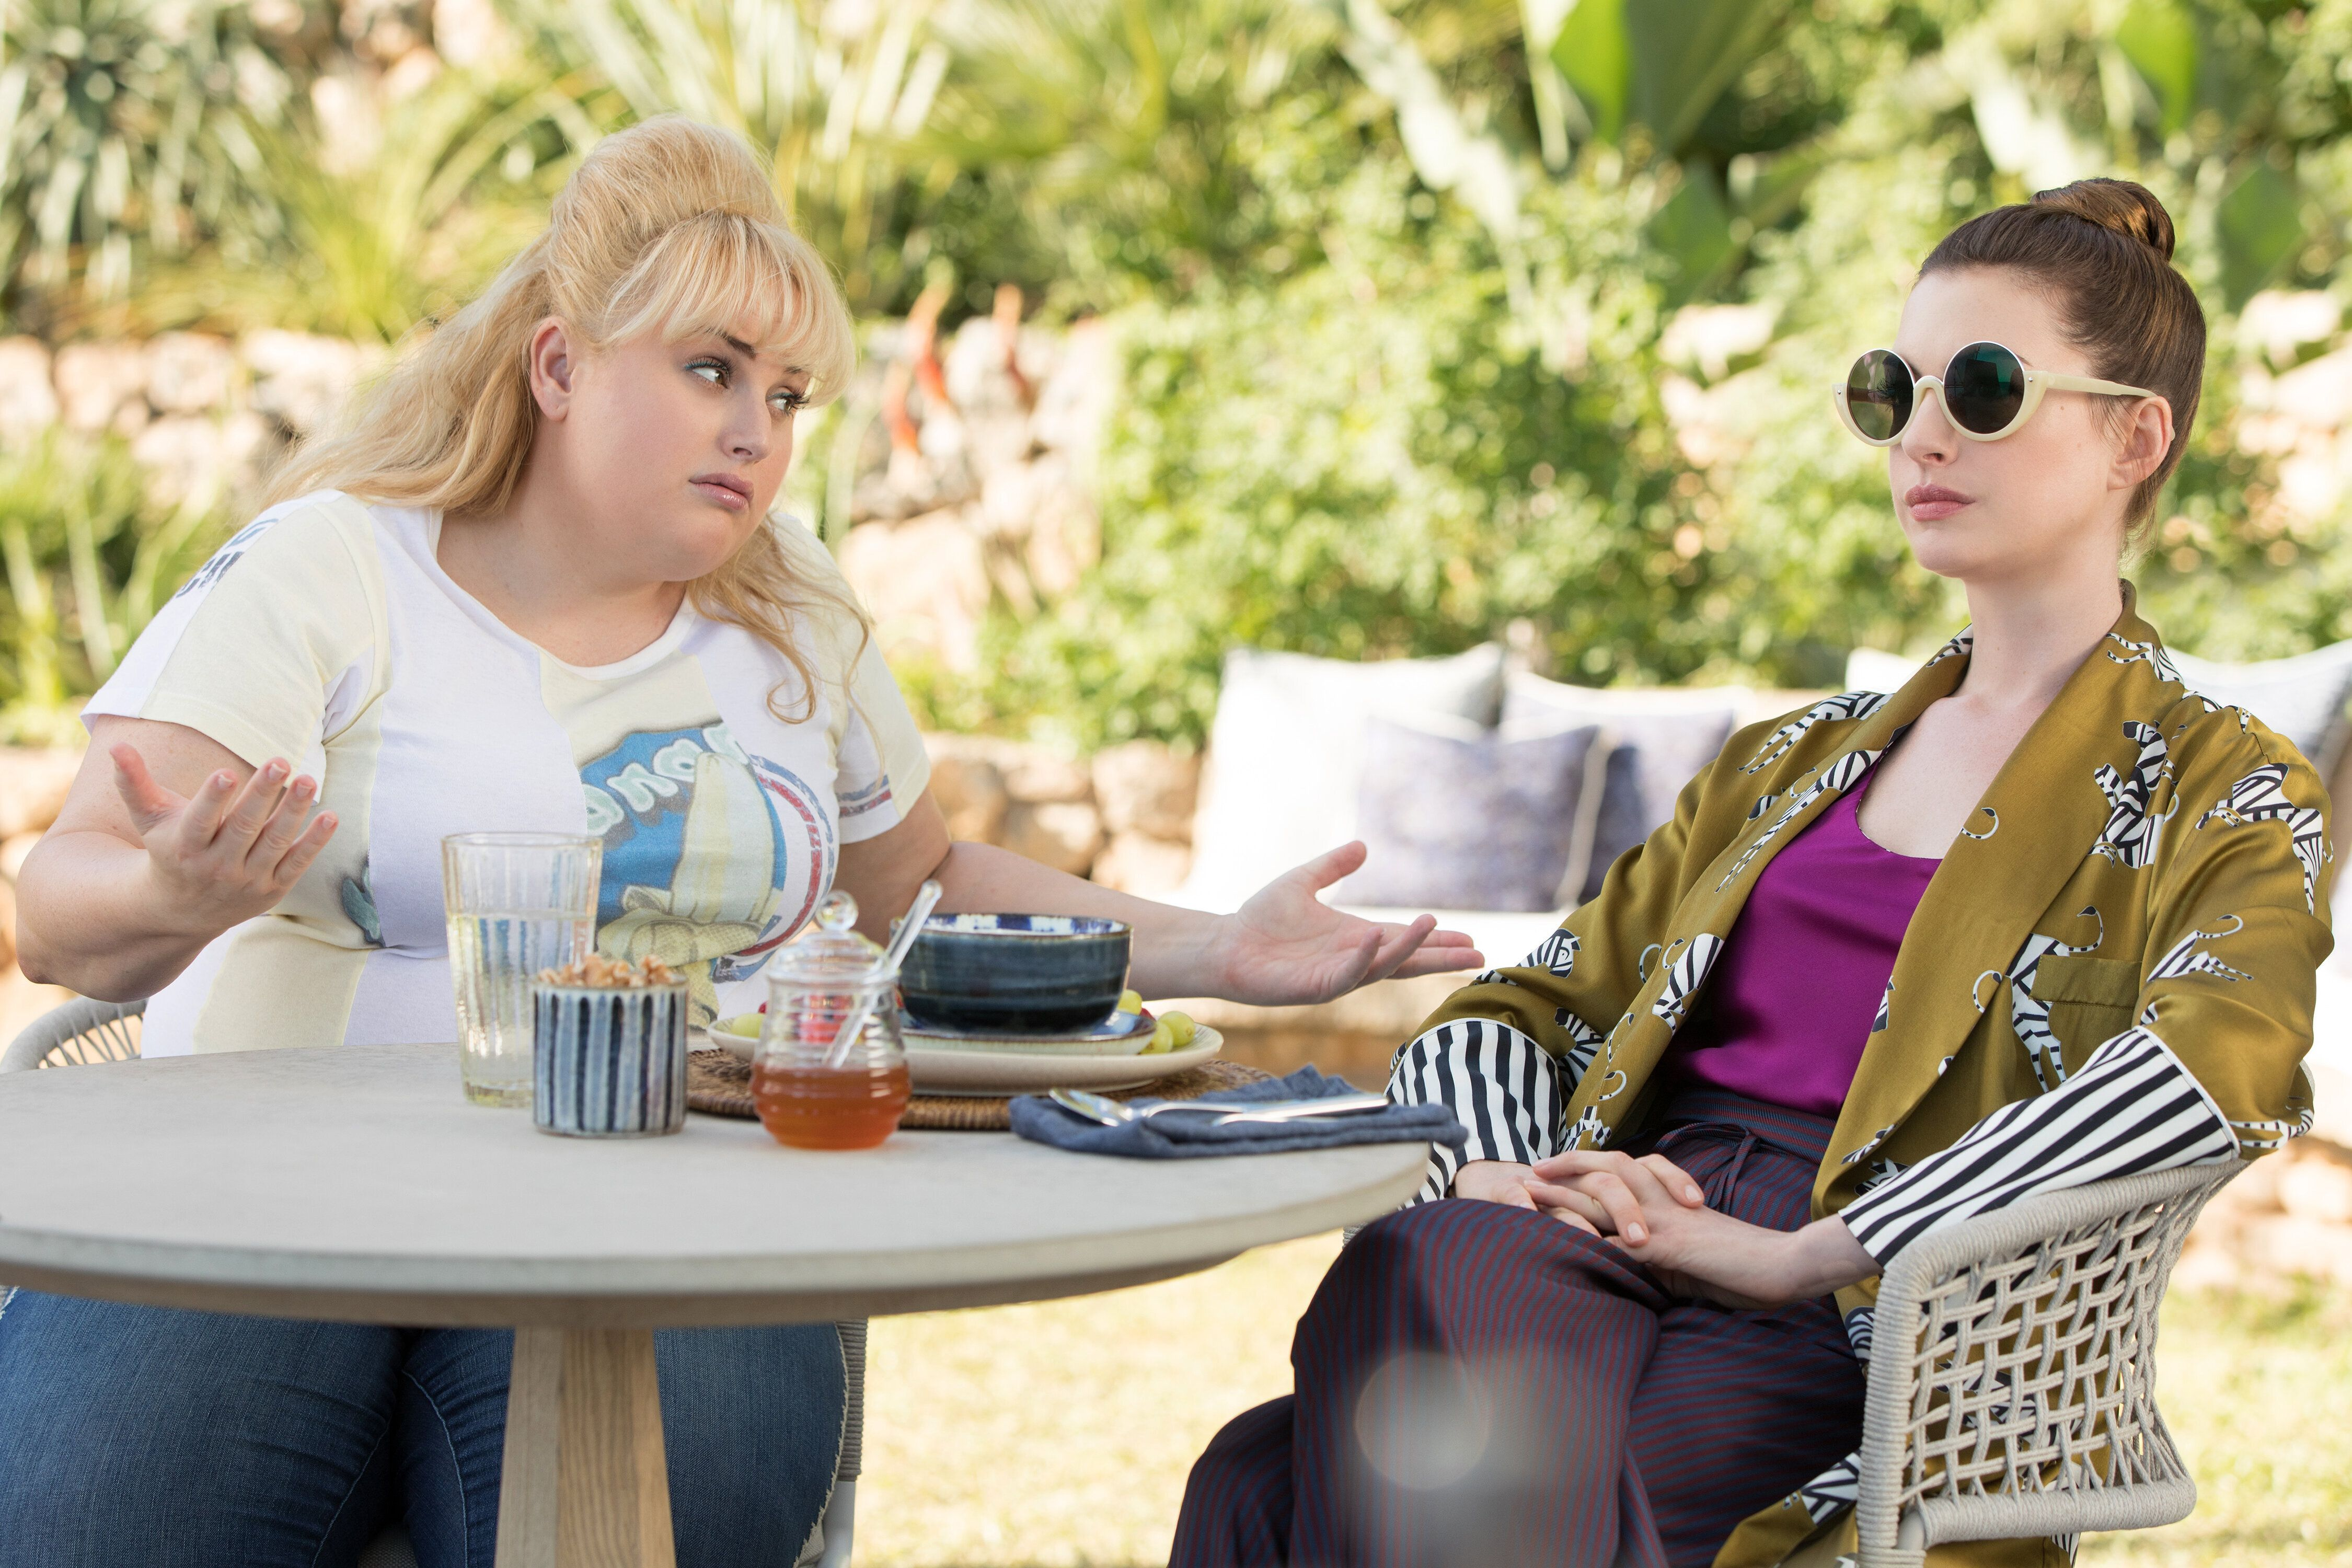 NW_03406-03416_R_COMP Rebel Wilson stars as Penny Rust and Anne Hathaway as Josephine Chesterfield  in THE HUSTLE, a Metro Goldwyn Mayer Pictures film. Credit: Christian Black / Metro Goldwyn Mayer Pictures© 2018 Metro-Goldwyn-Mayer Pictures Inc.  All Rights Reserved.